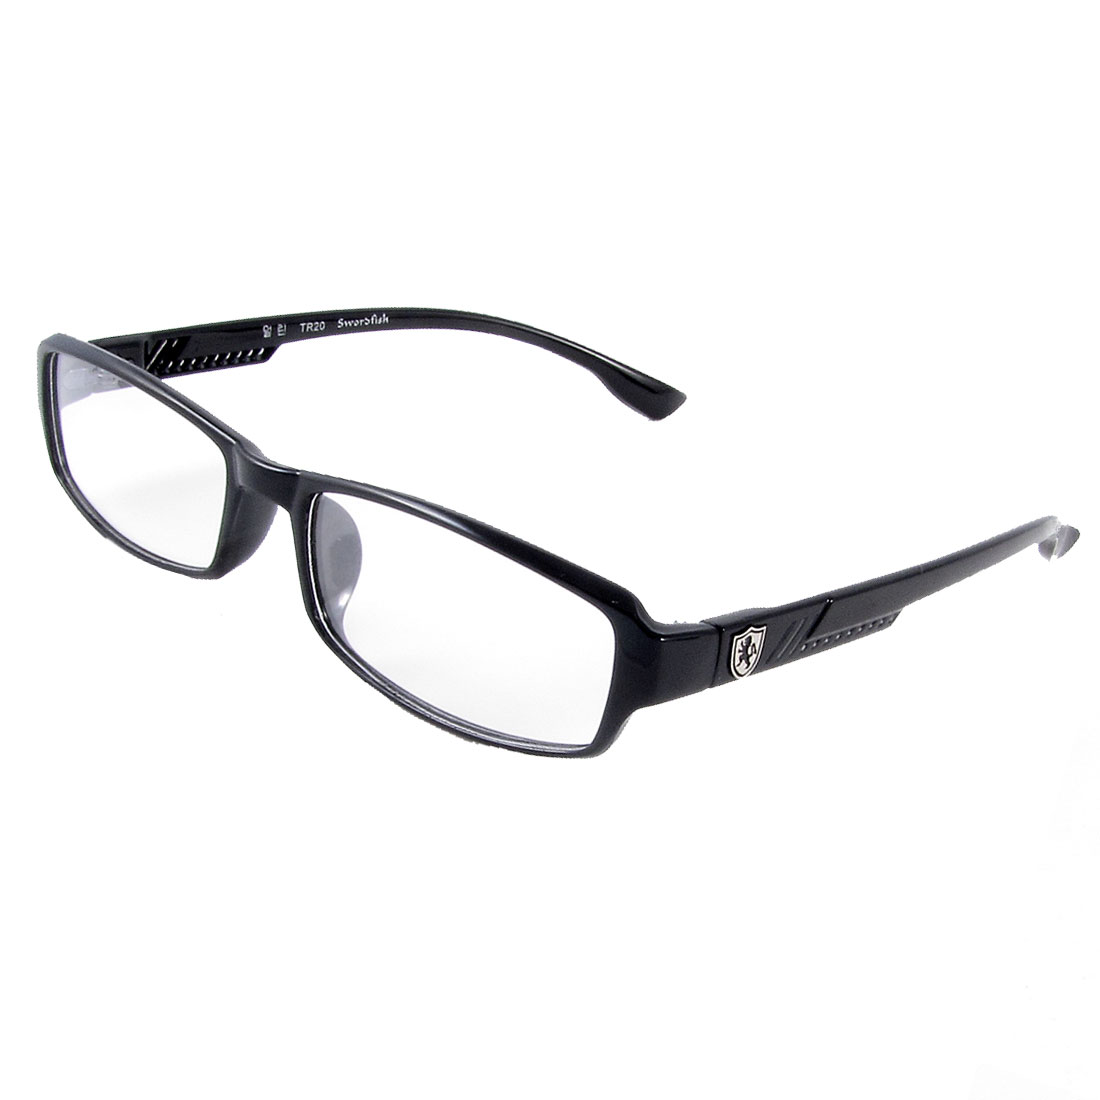 Man Black Full Rim Frame Single Bridge Clear Lens Glasses Spectacles